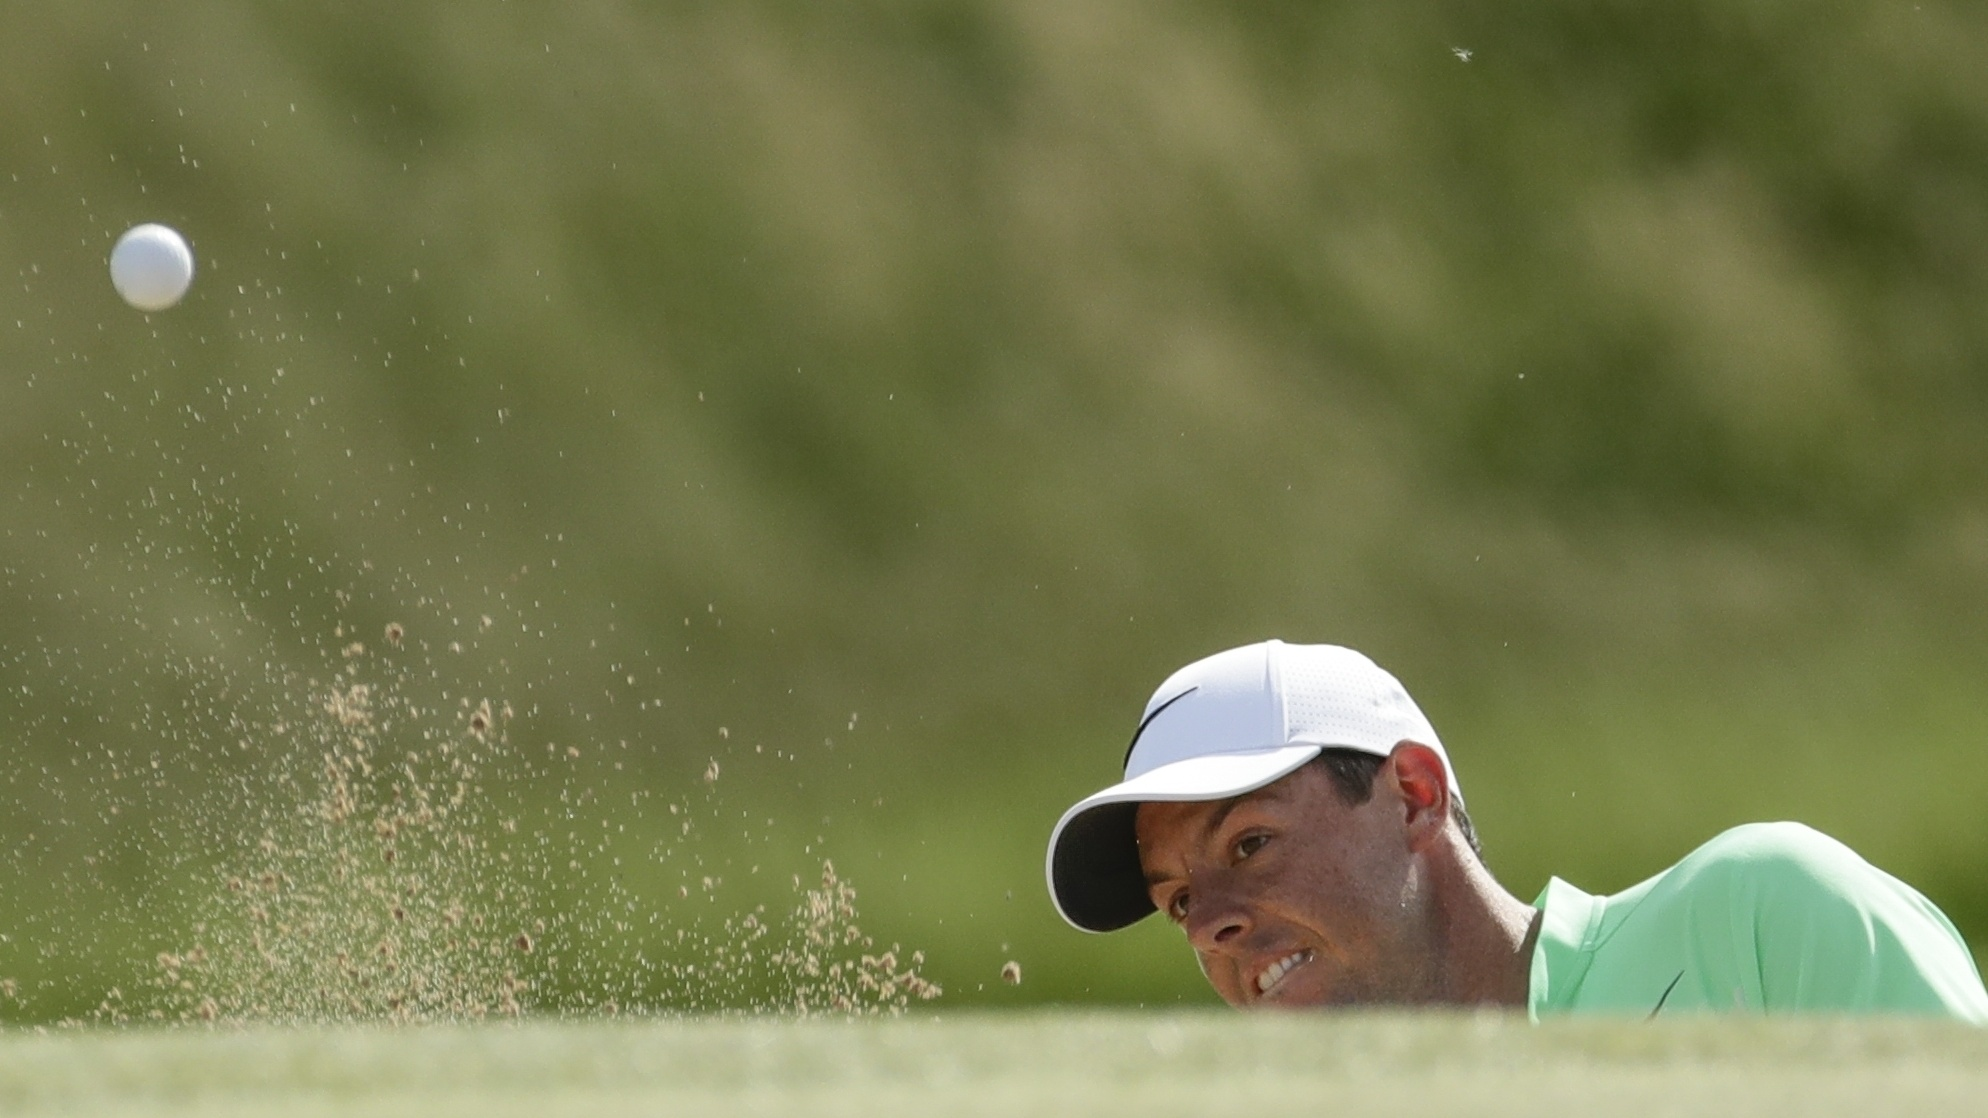 McIlroy motivated by 'busy summer' after missing US Open cut